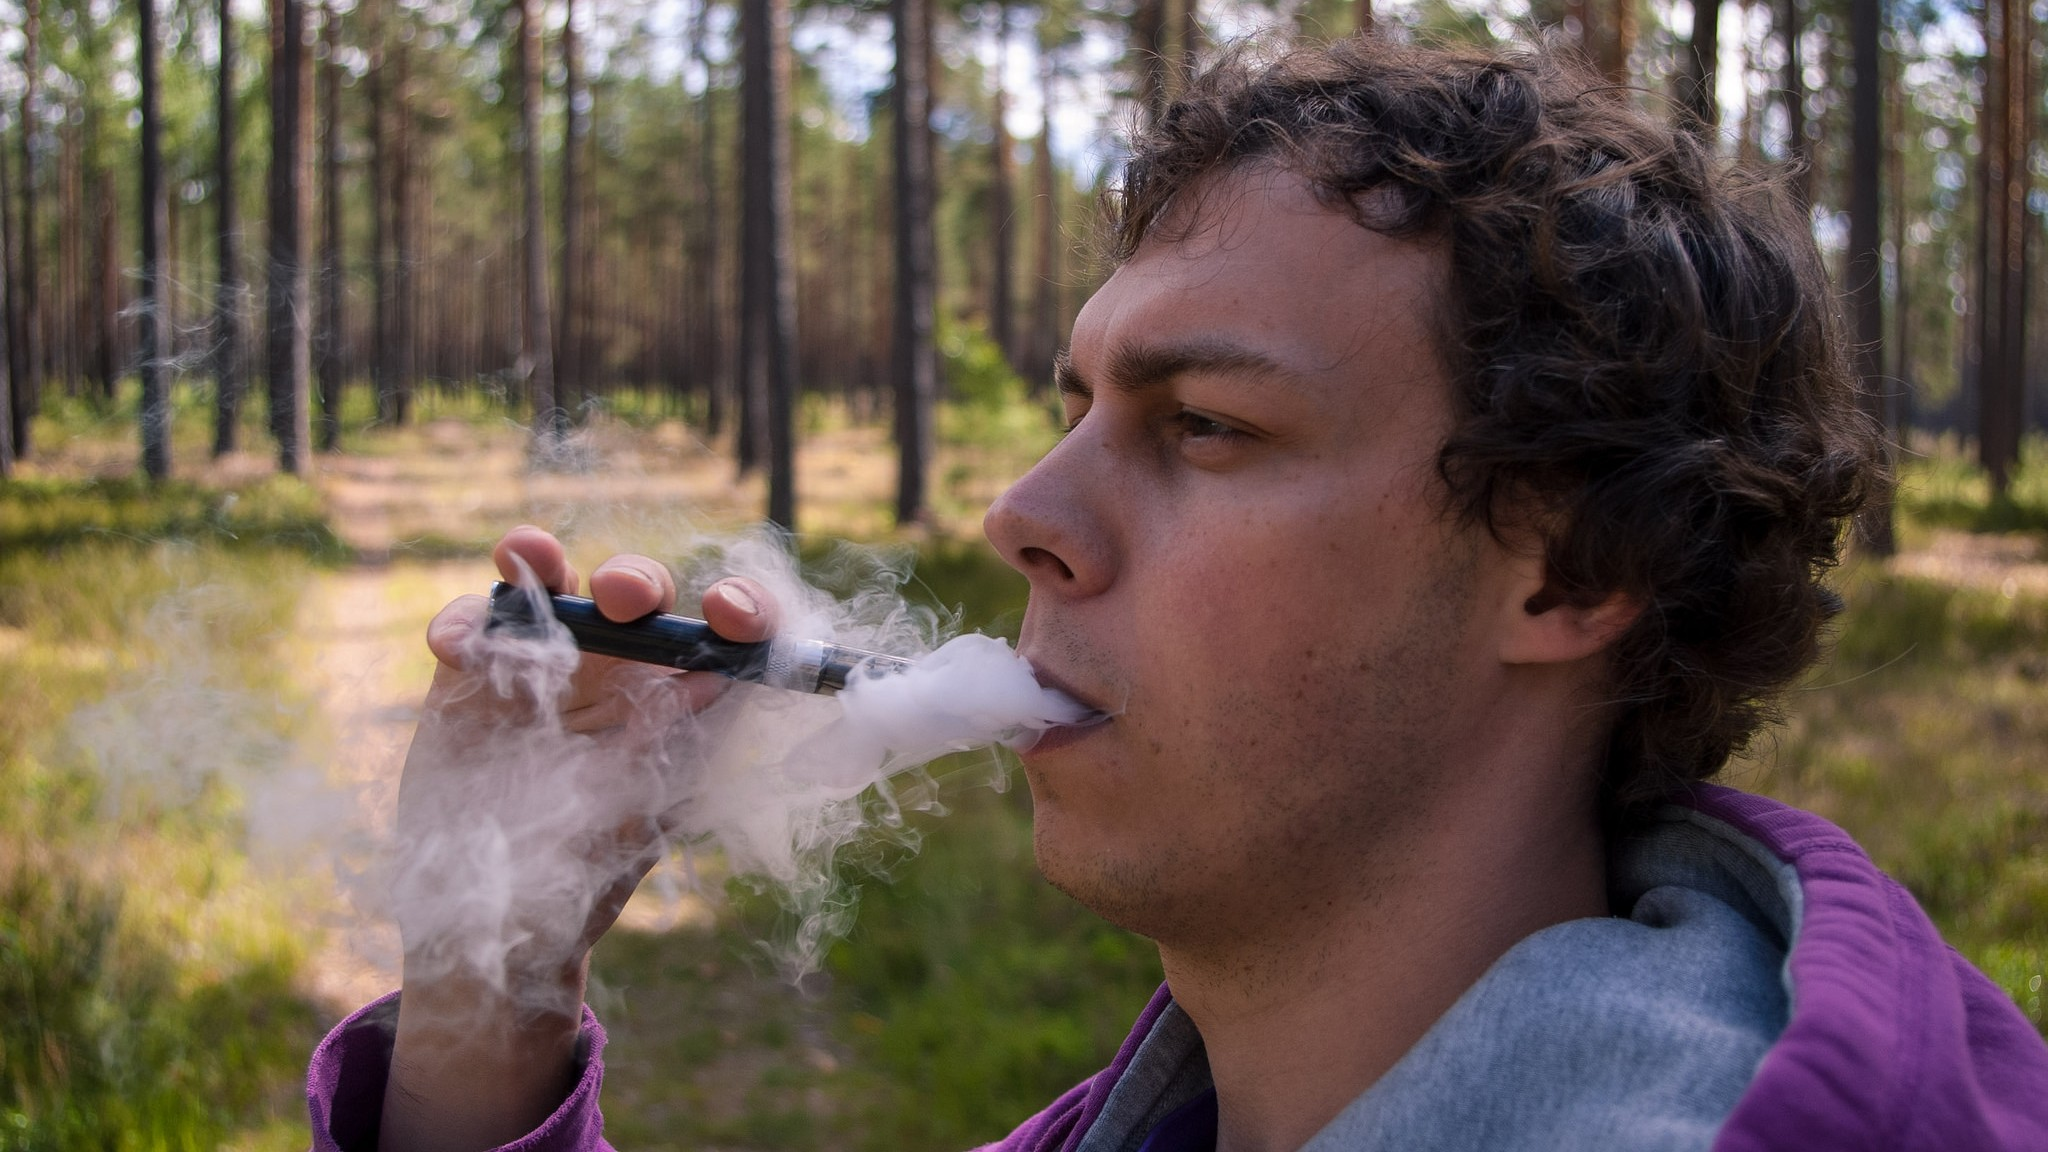 Strict New Regulations Are Forcing Vapers to Go DIY